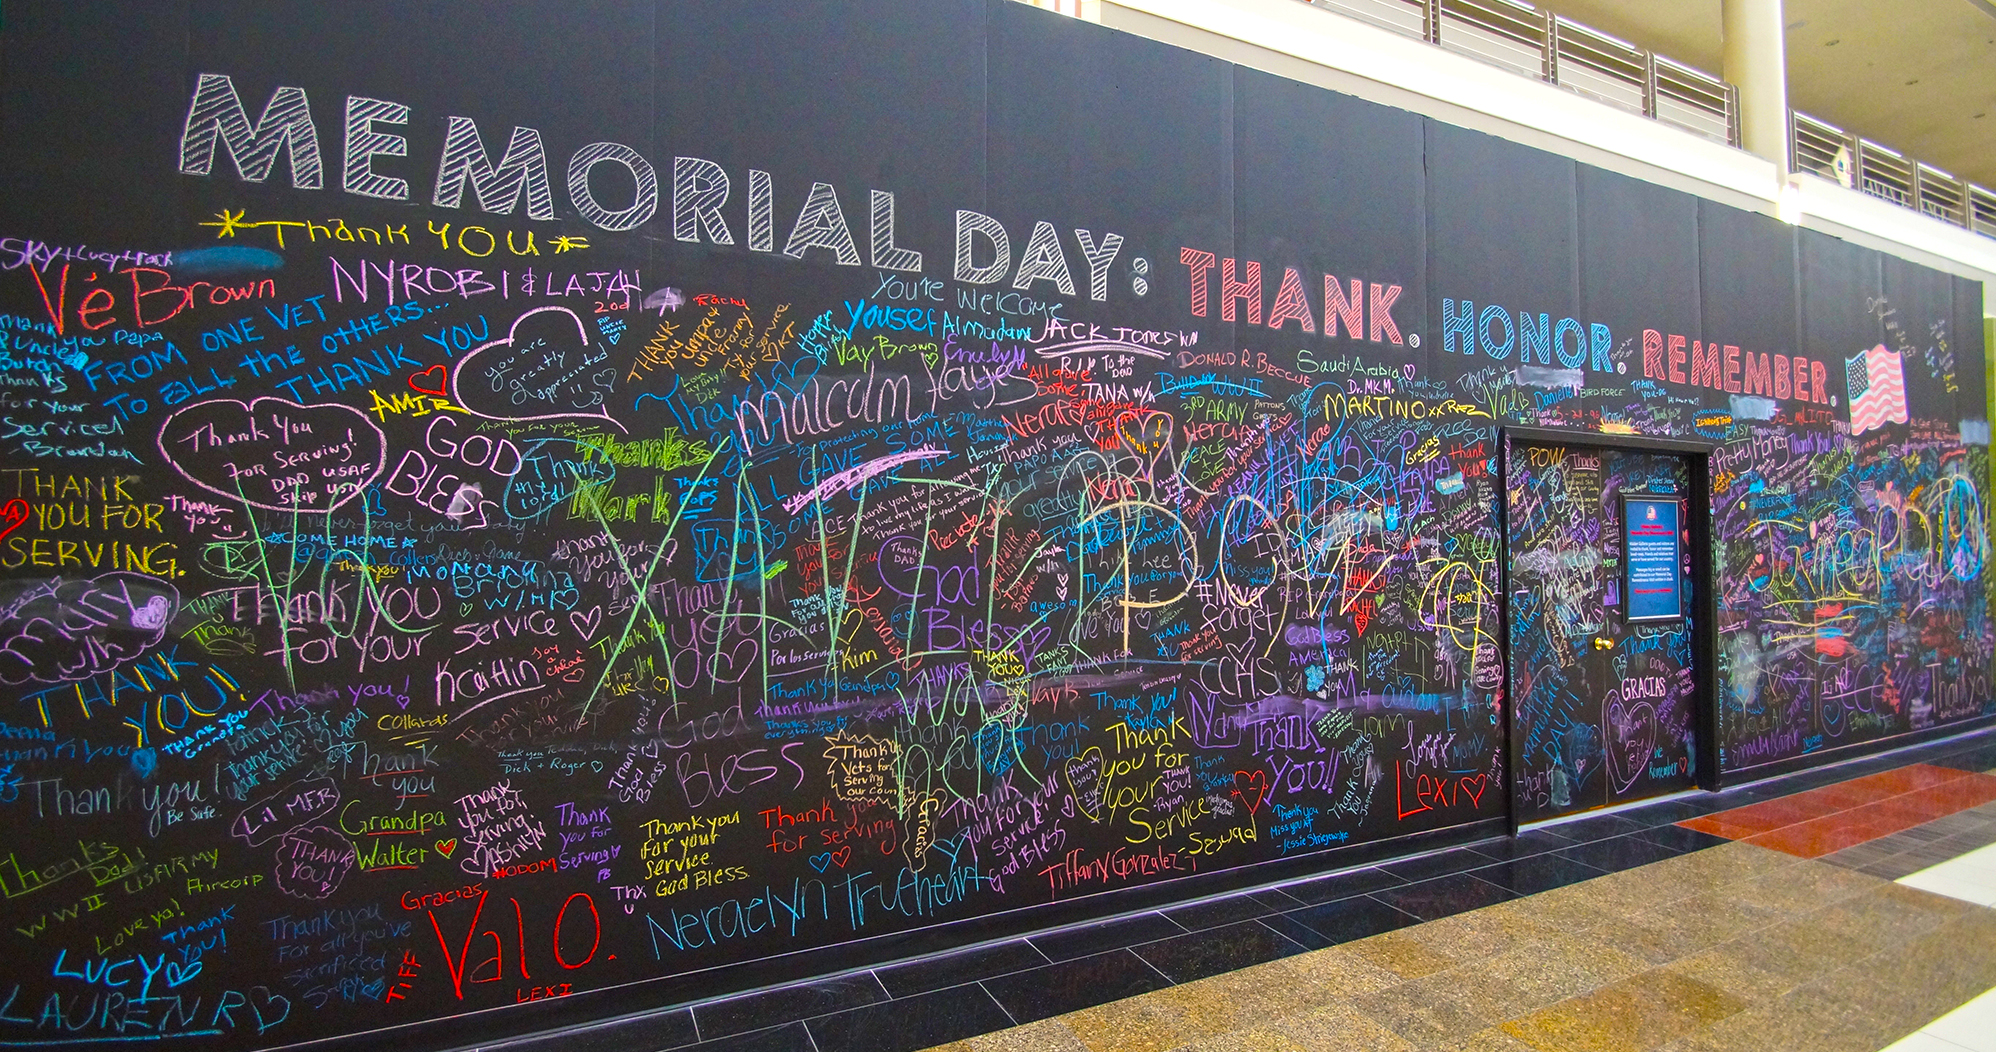 Walden Galleria's Memorial Day Remembrance Wall